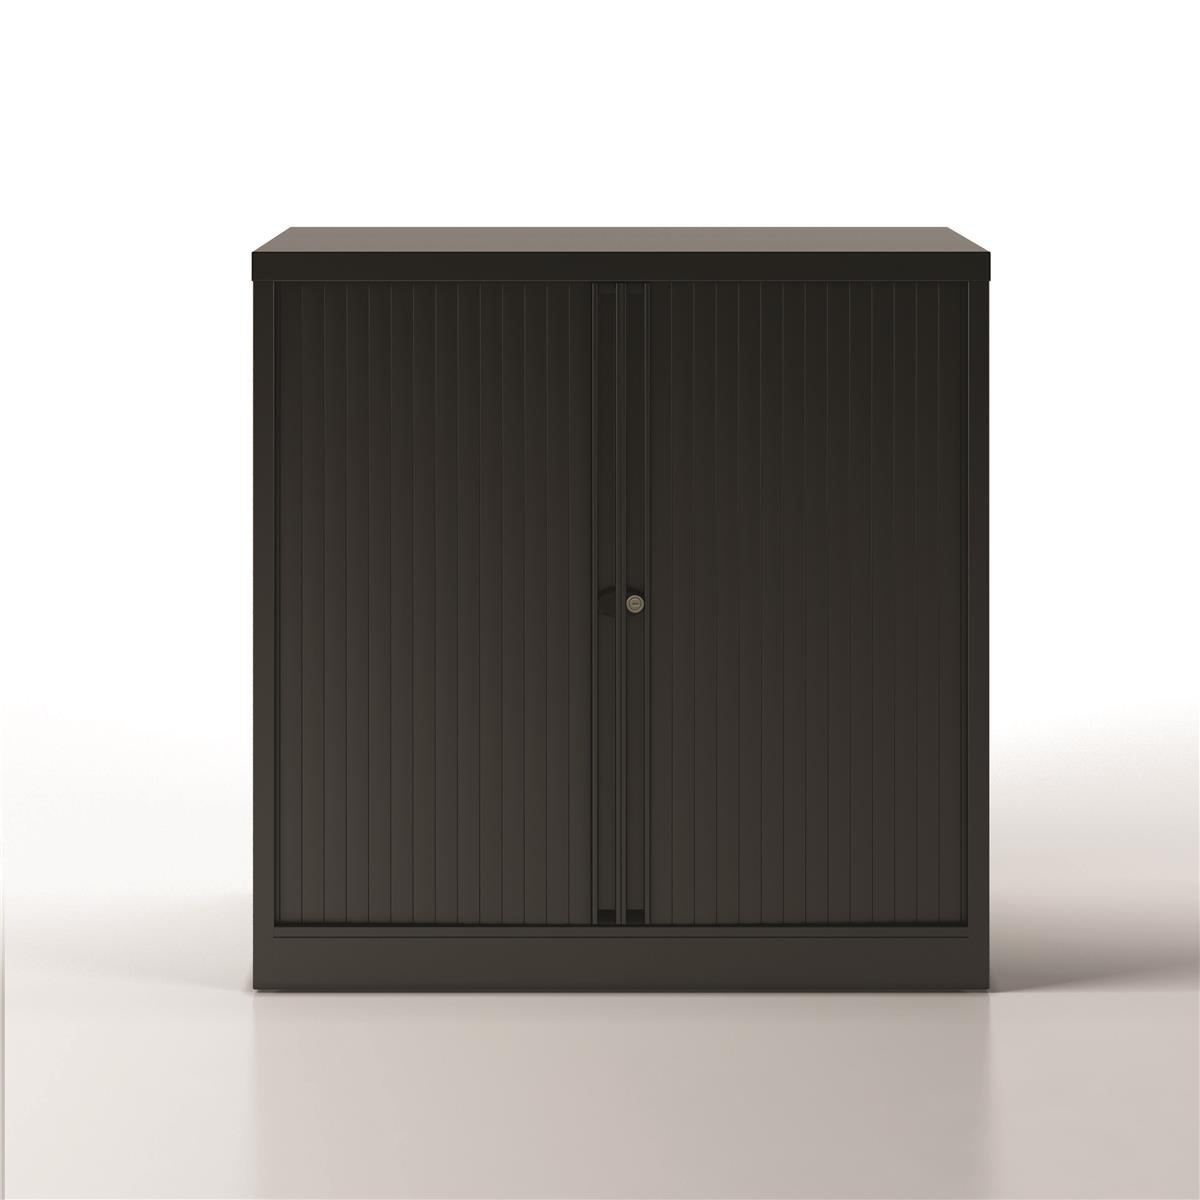 Trexus by Bisley Side Opening Tambour Door Cupboard 1000x470x1000-1015mm Black/​Black Ref YETB1010.5-av1